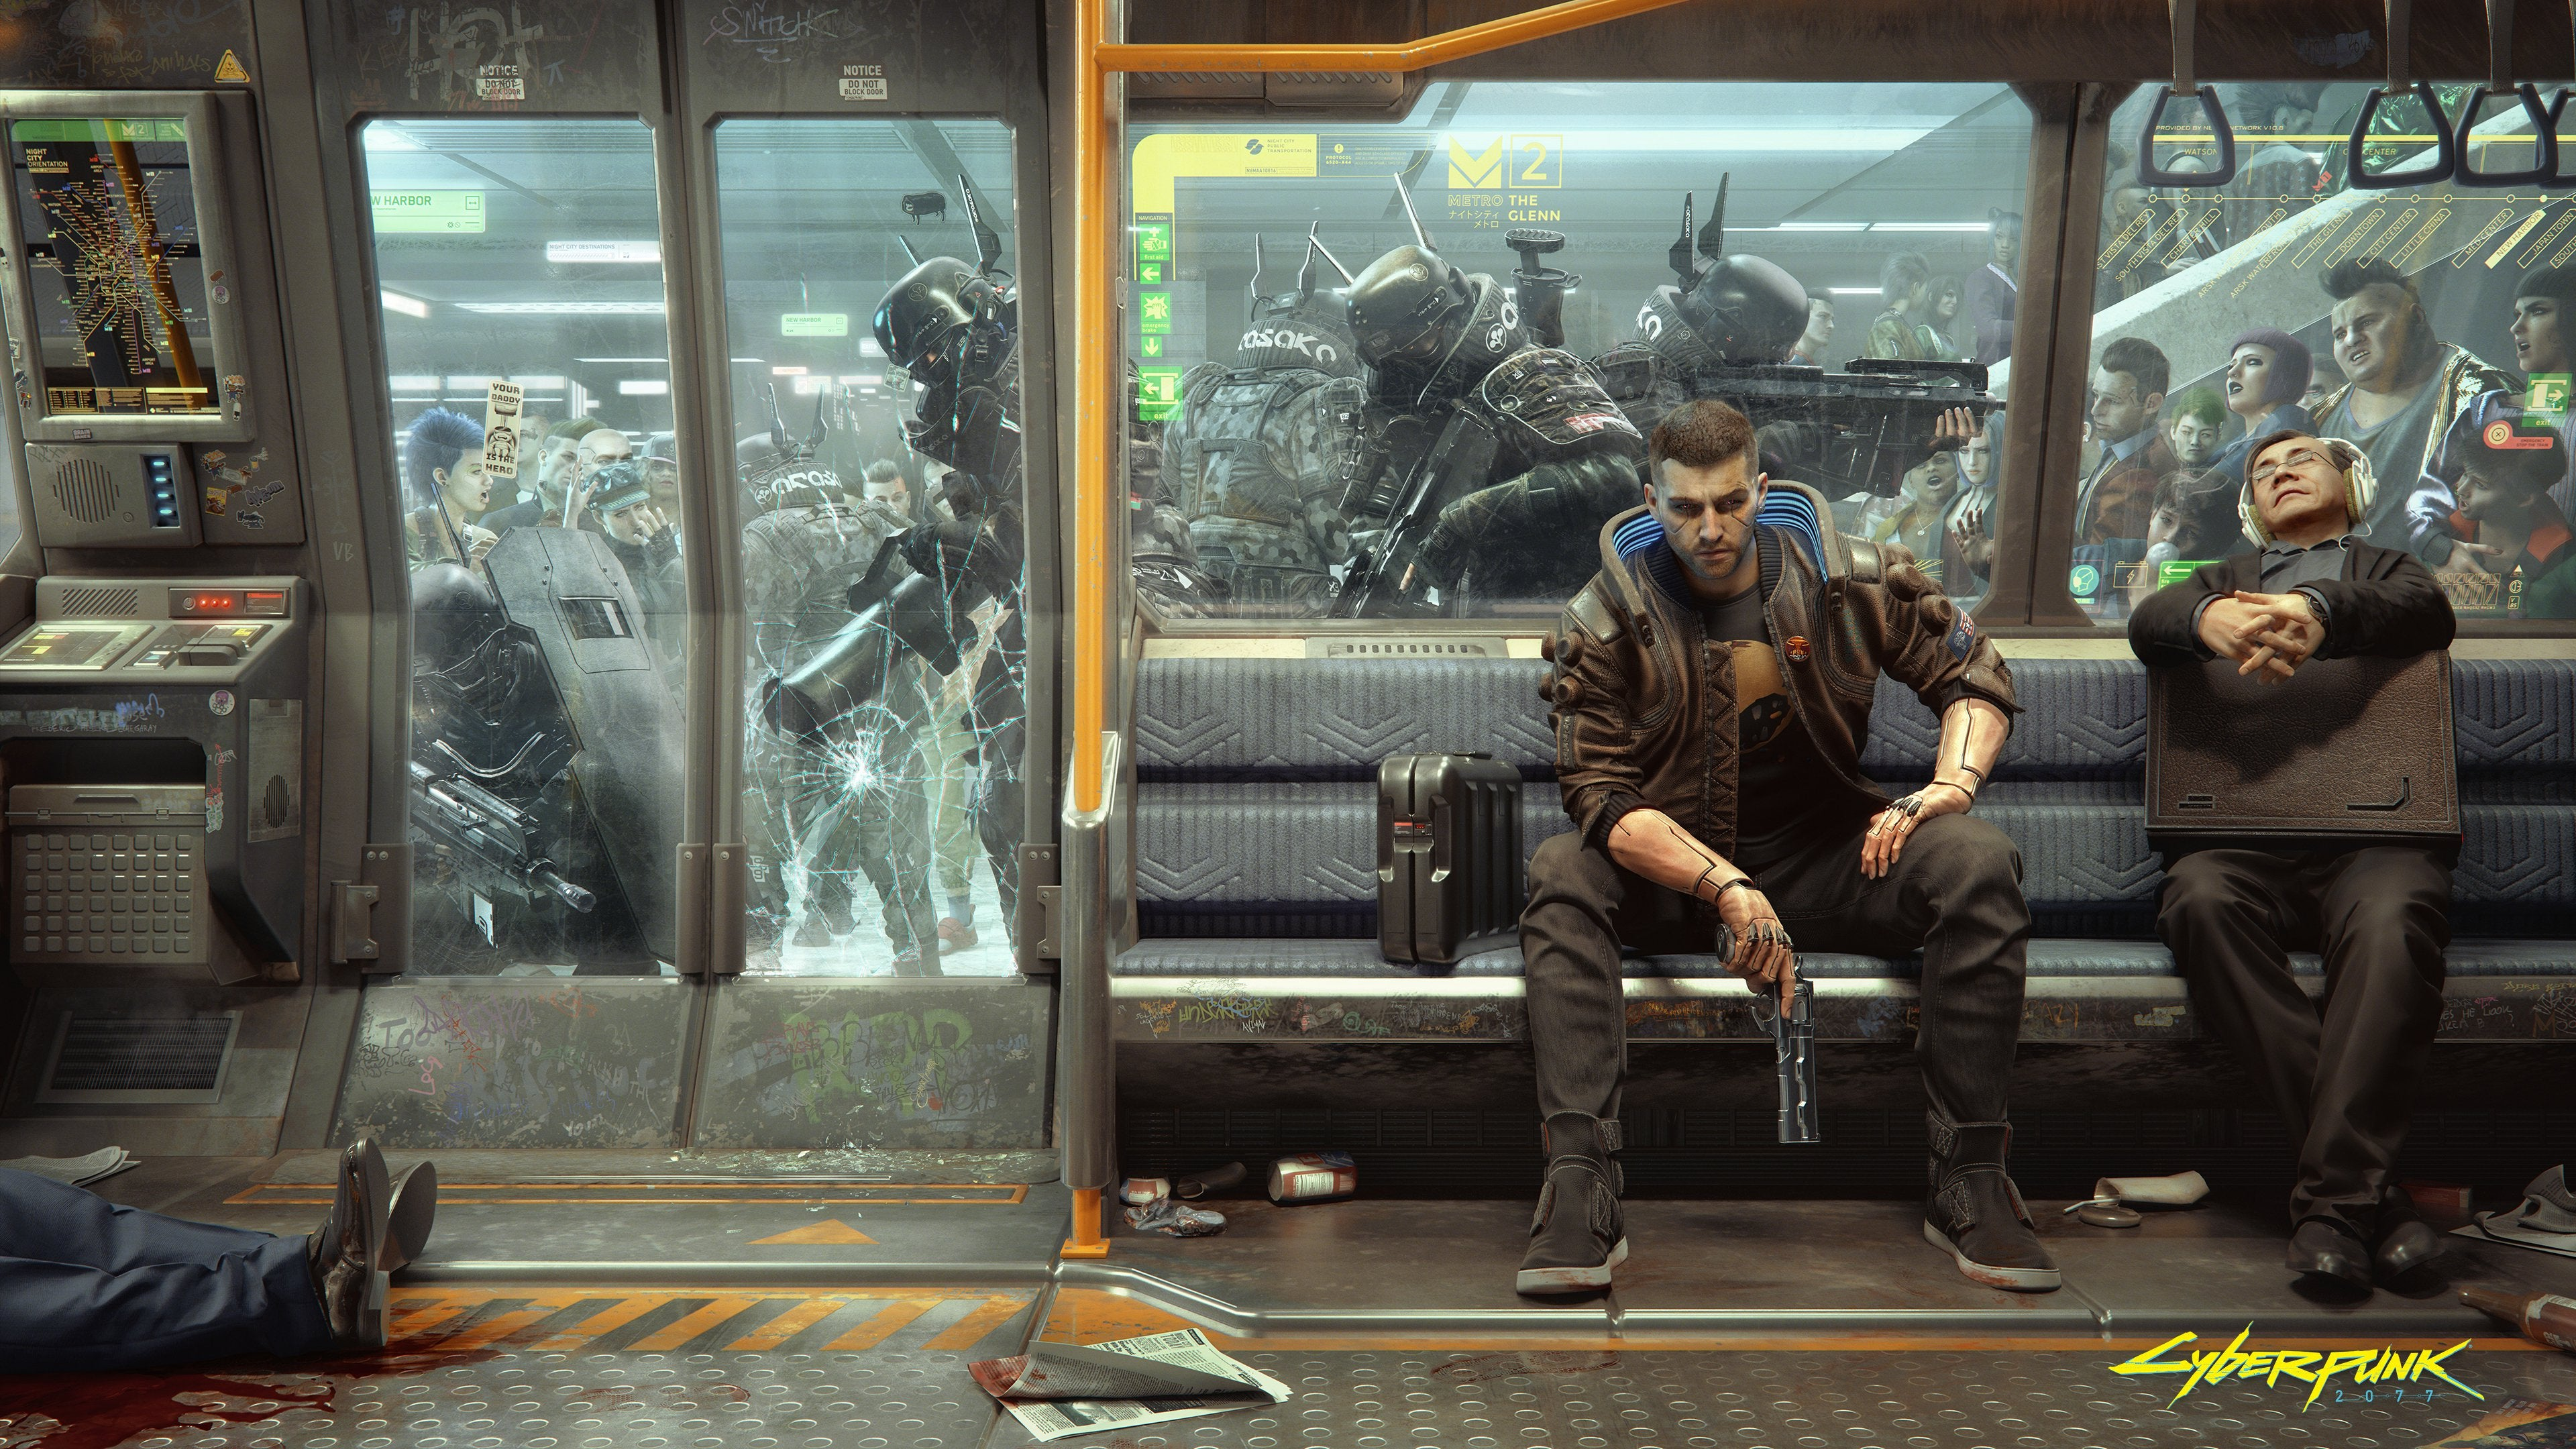 Cyberpunk 2077 Game 2020 4k Hd Games 4k Wallpapers Images Backgrounds Photos And Pictures